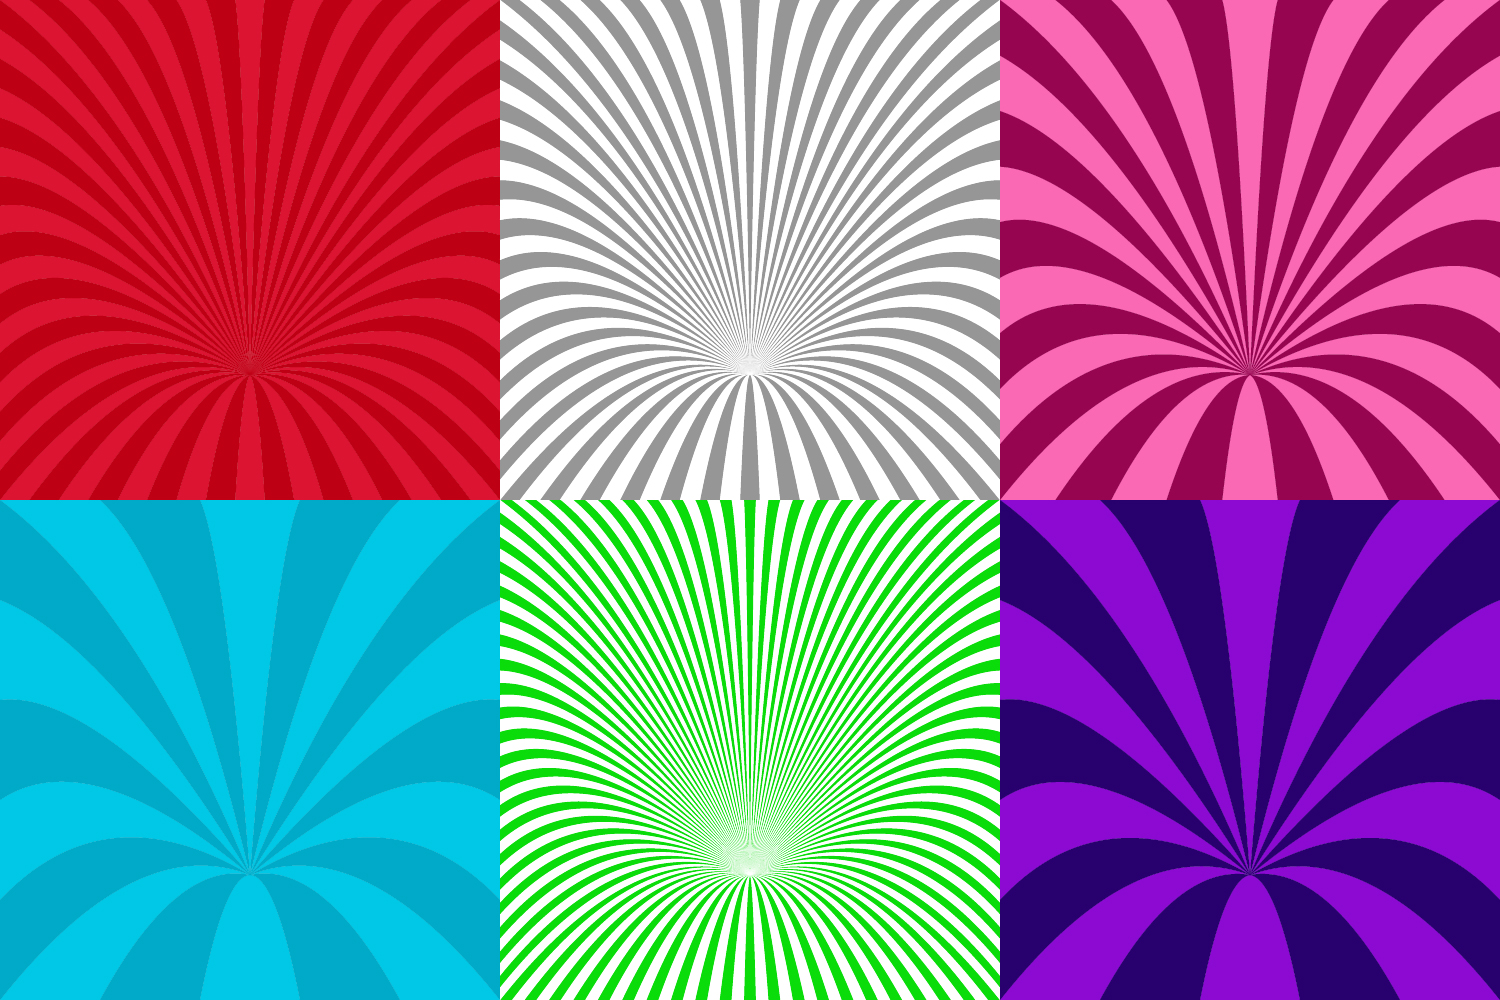 50 Curved Backgrounds AI, EPS, JPG 5000x5000 example image 2